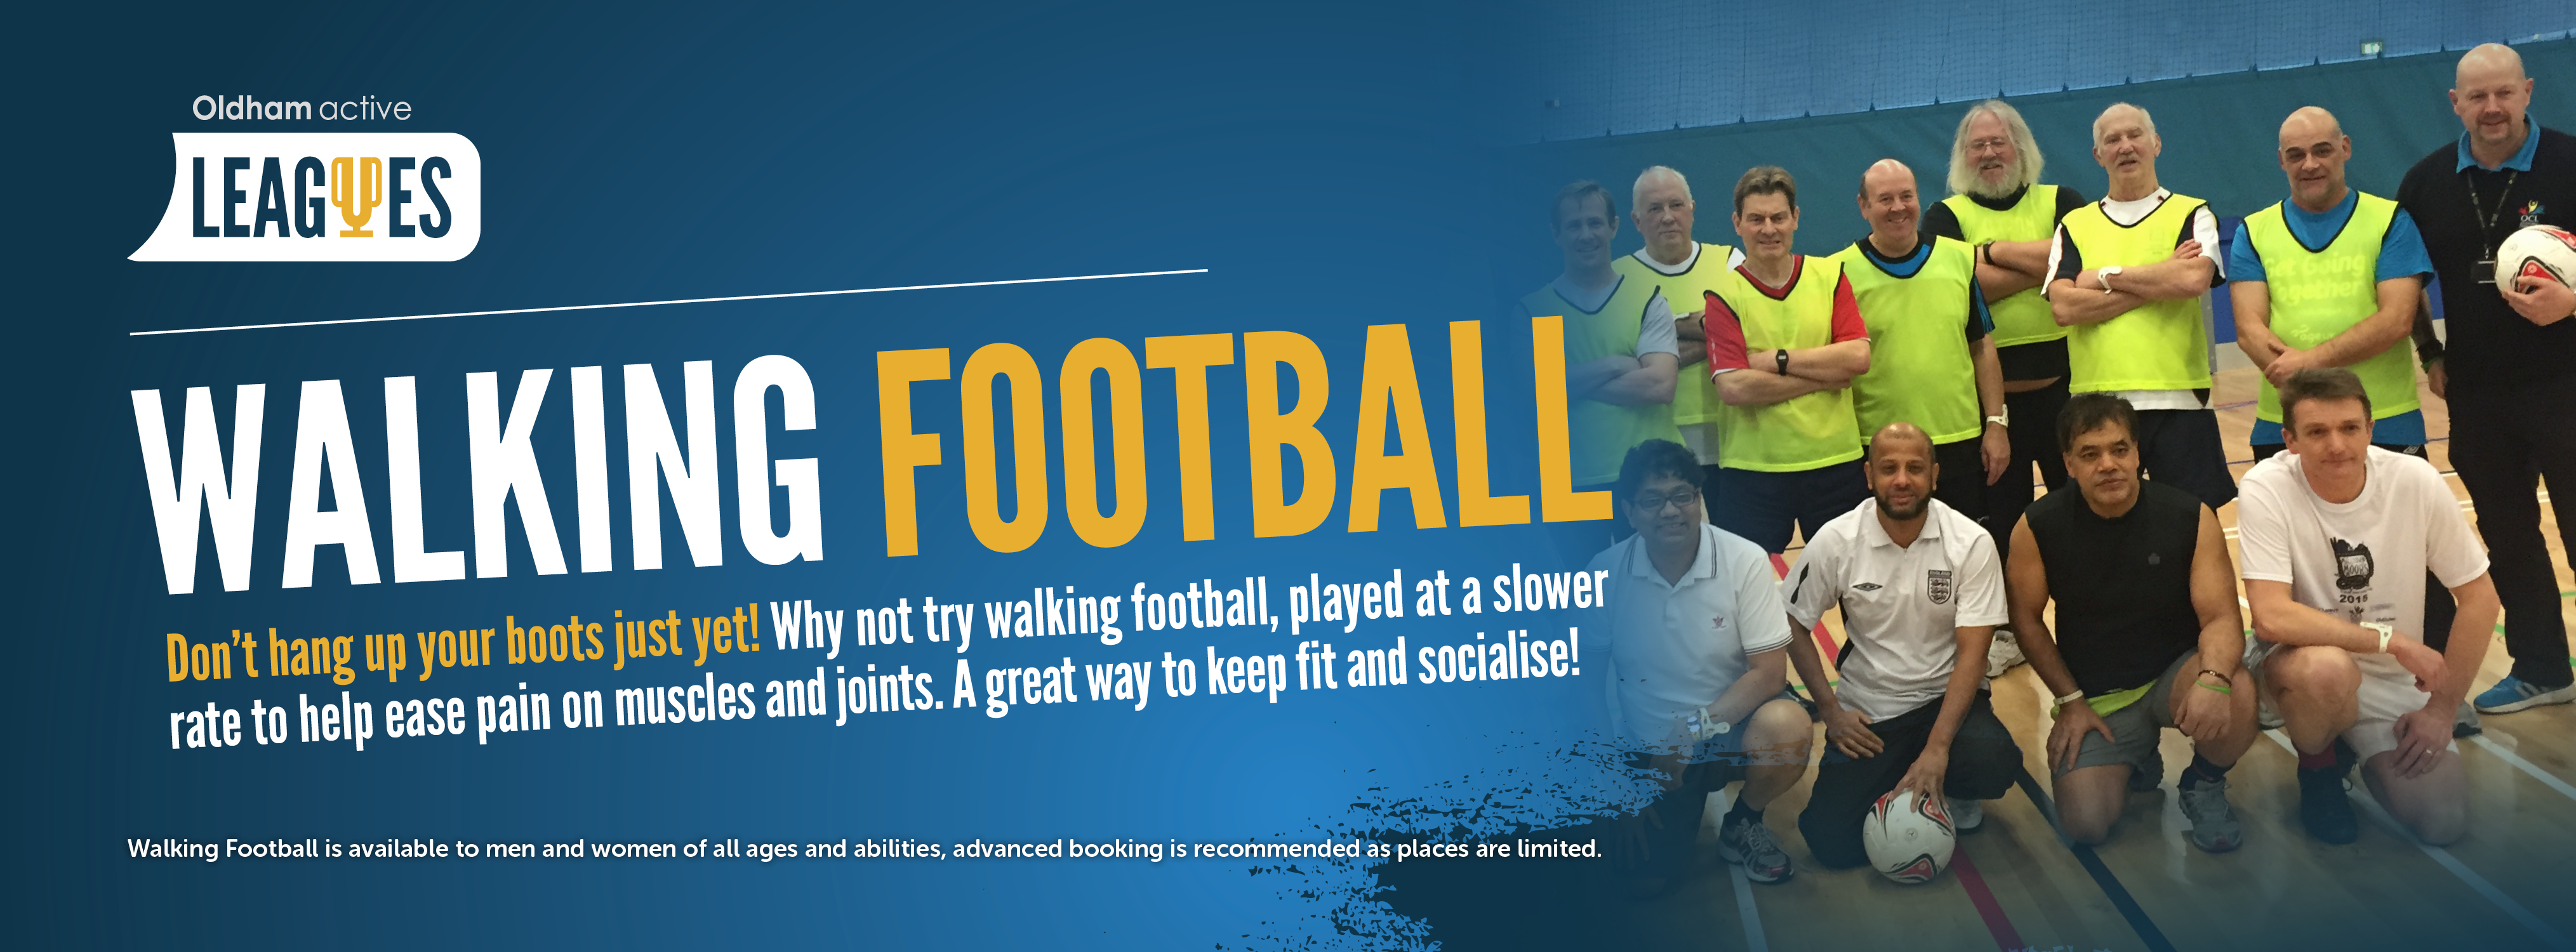 Oldham Active Leagues Walking Football